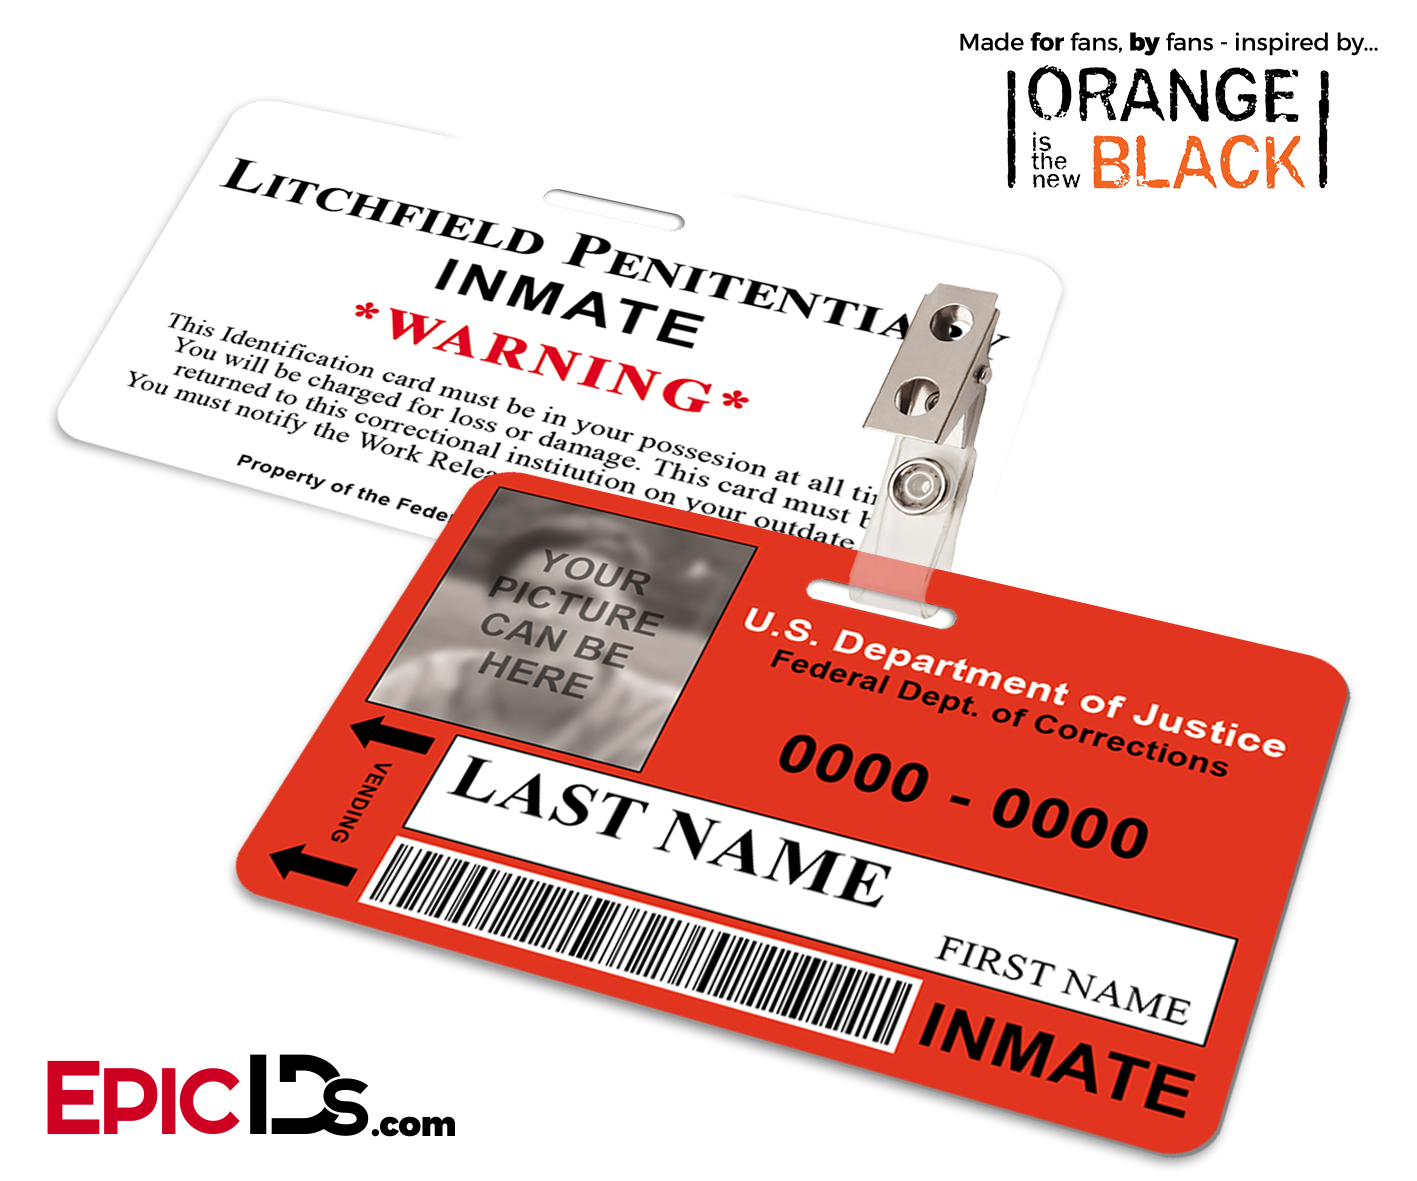 Litchfield Penitentiary OITNB Inmate Wearable ID Badge Photo Personalized